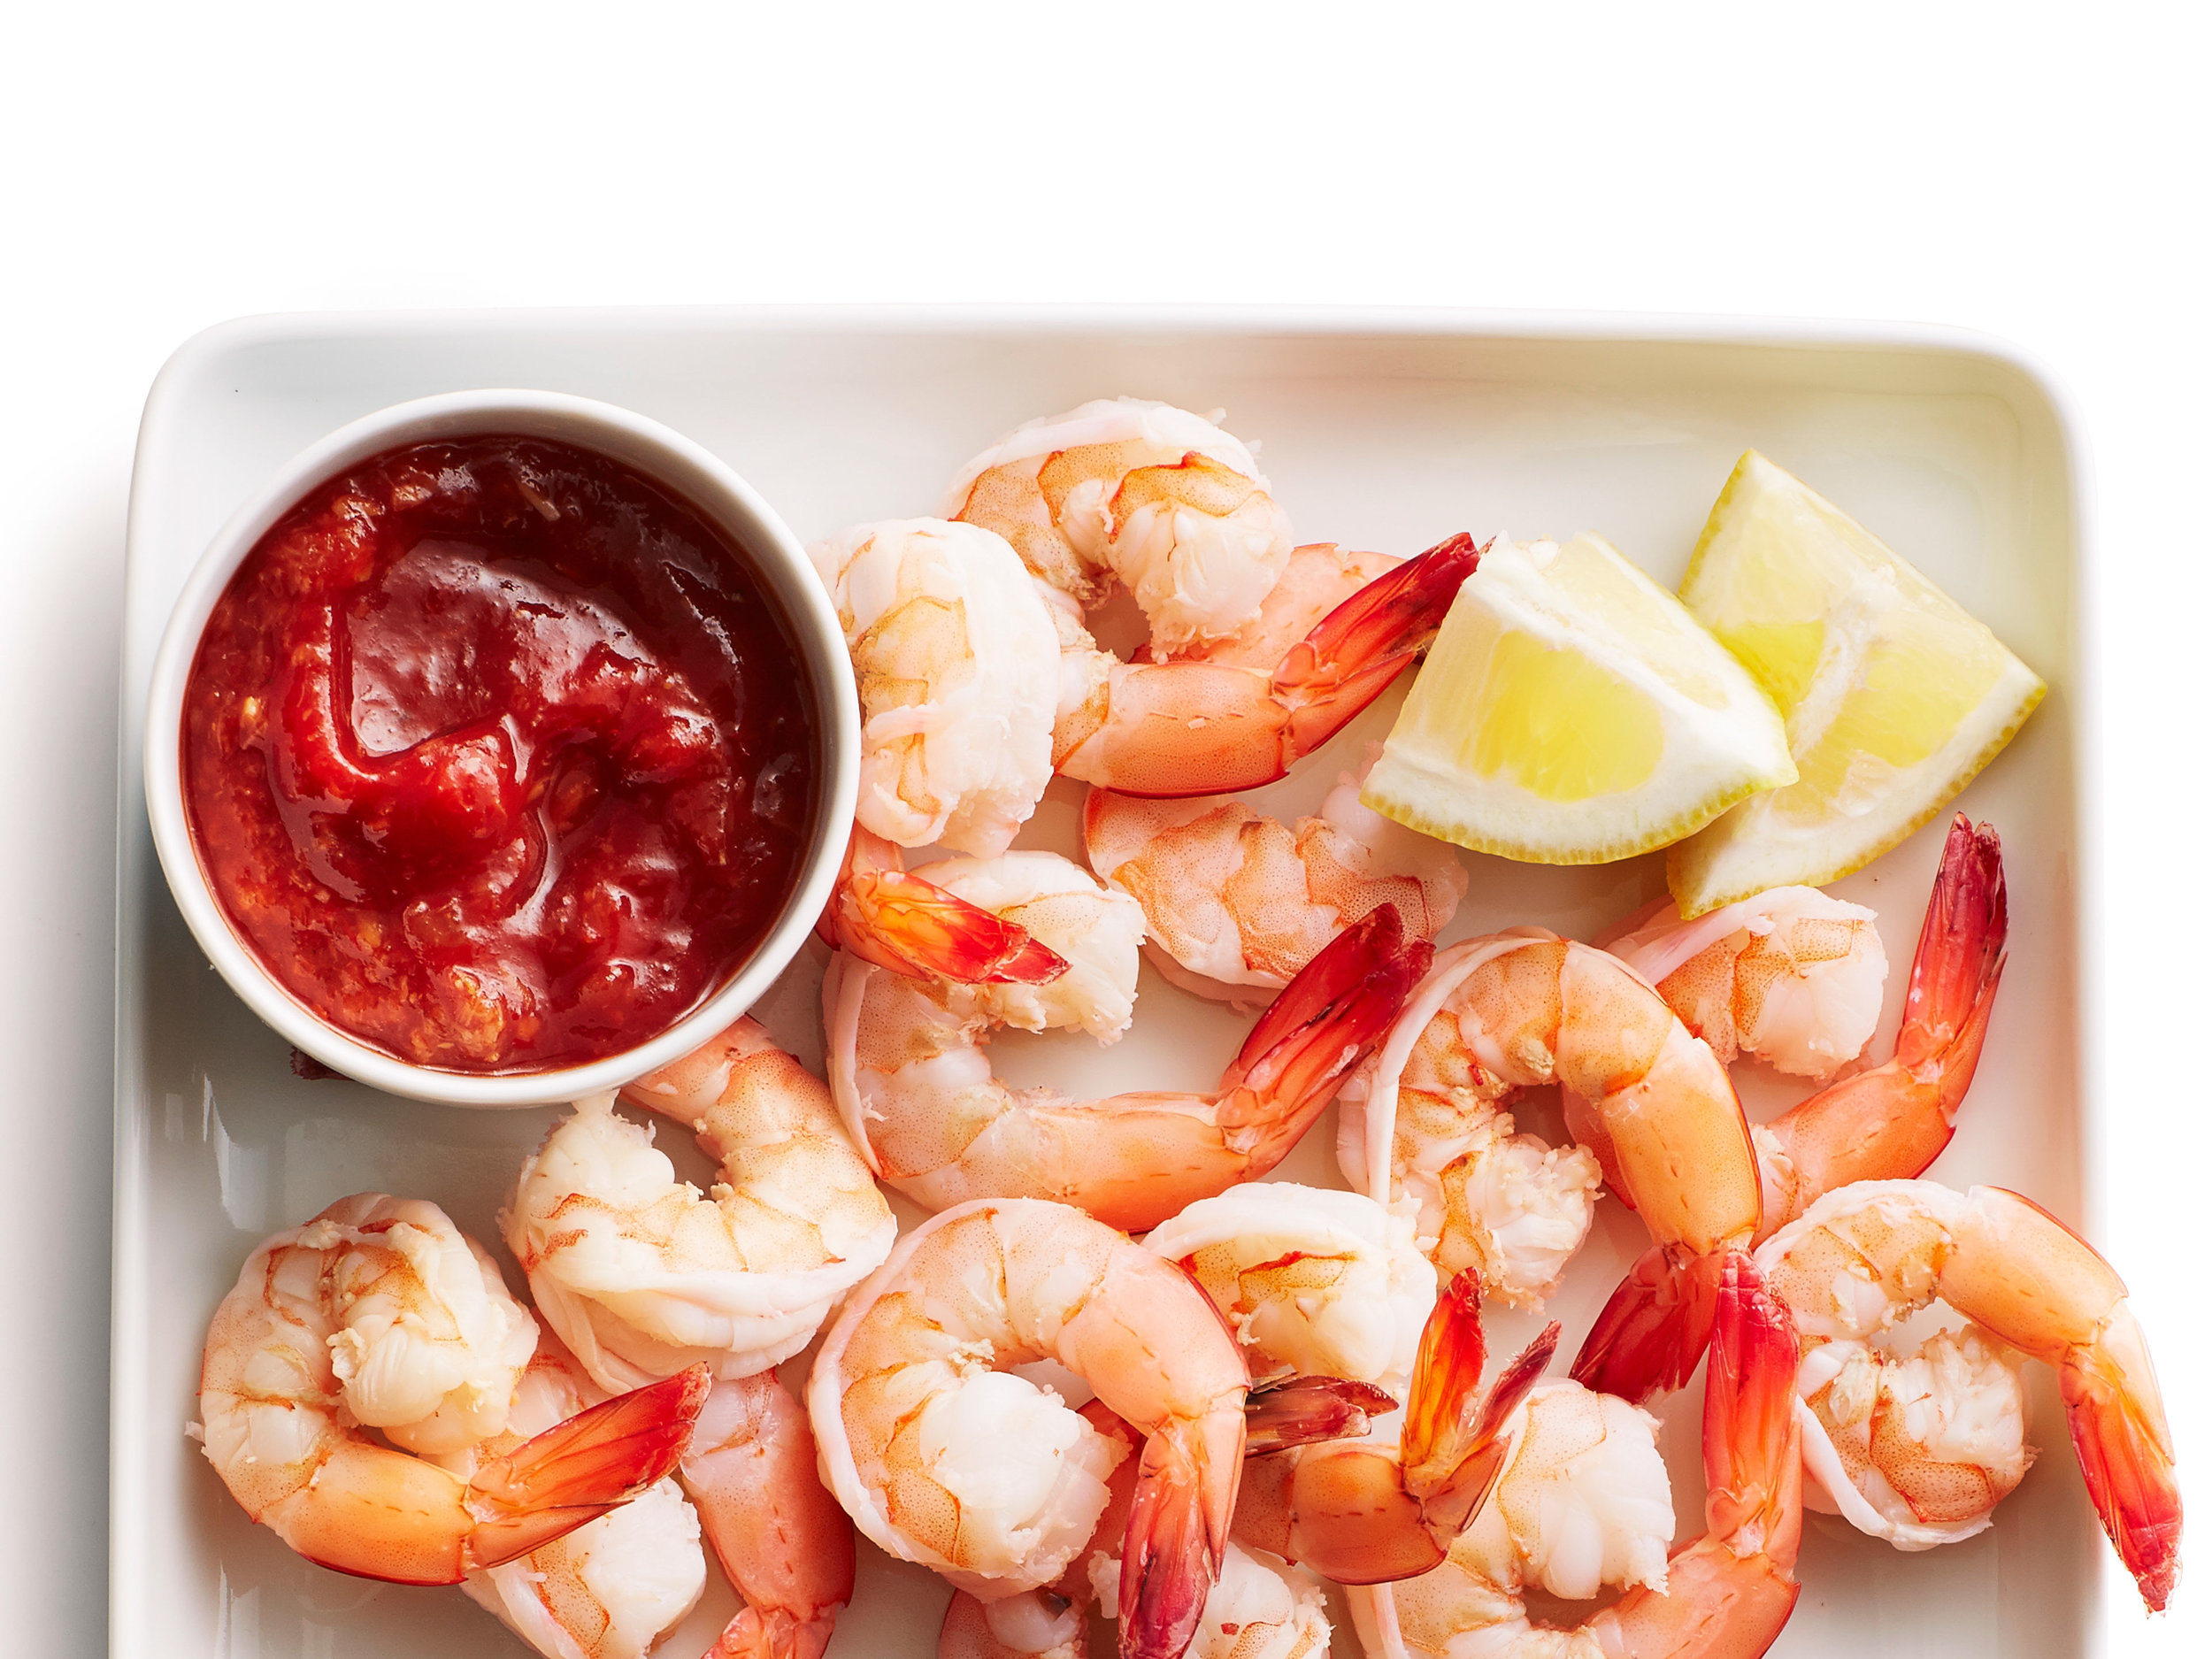 FNM_110114-Shrimp-Cocktail-Recipe_s4x3.jpg